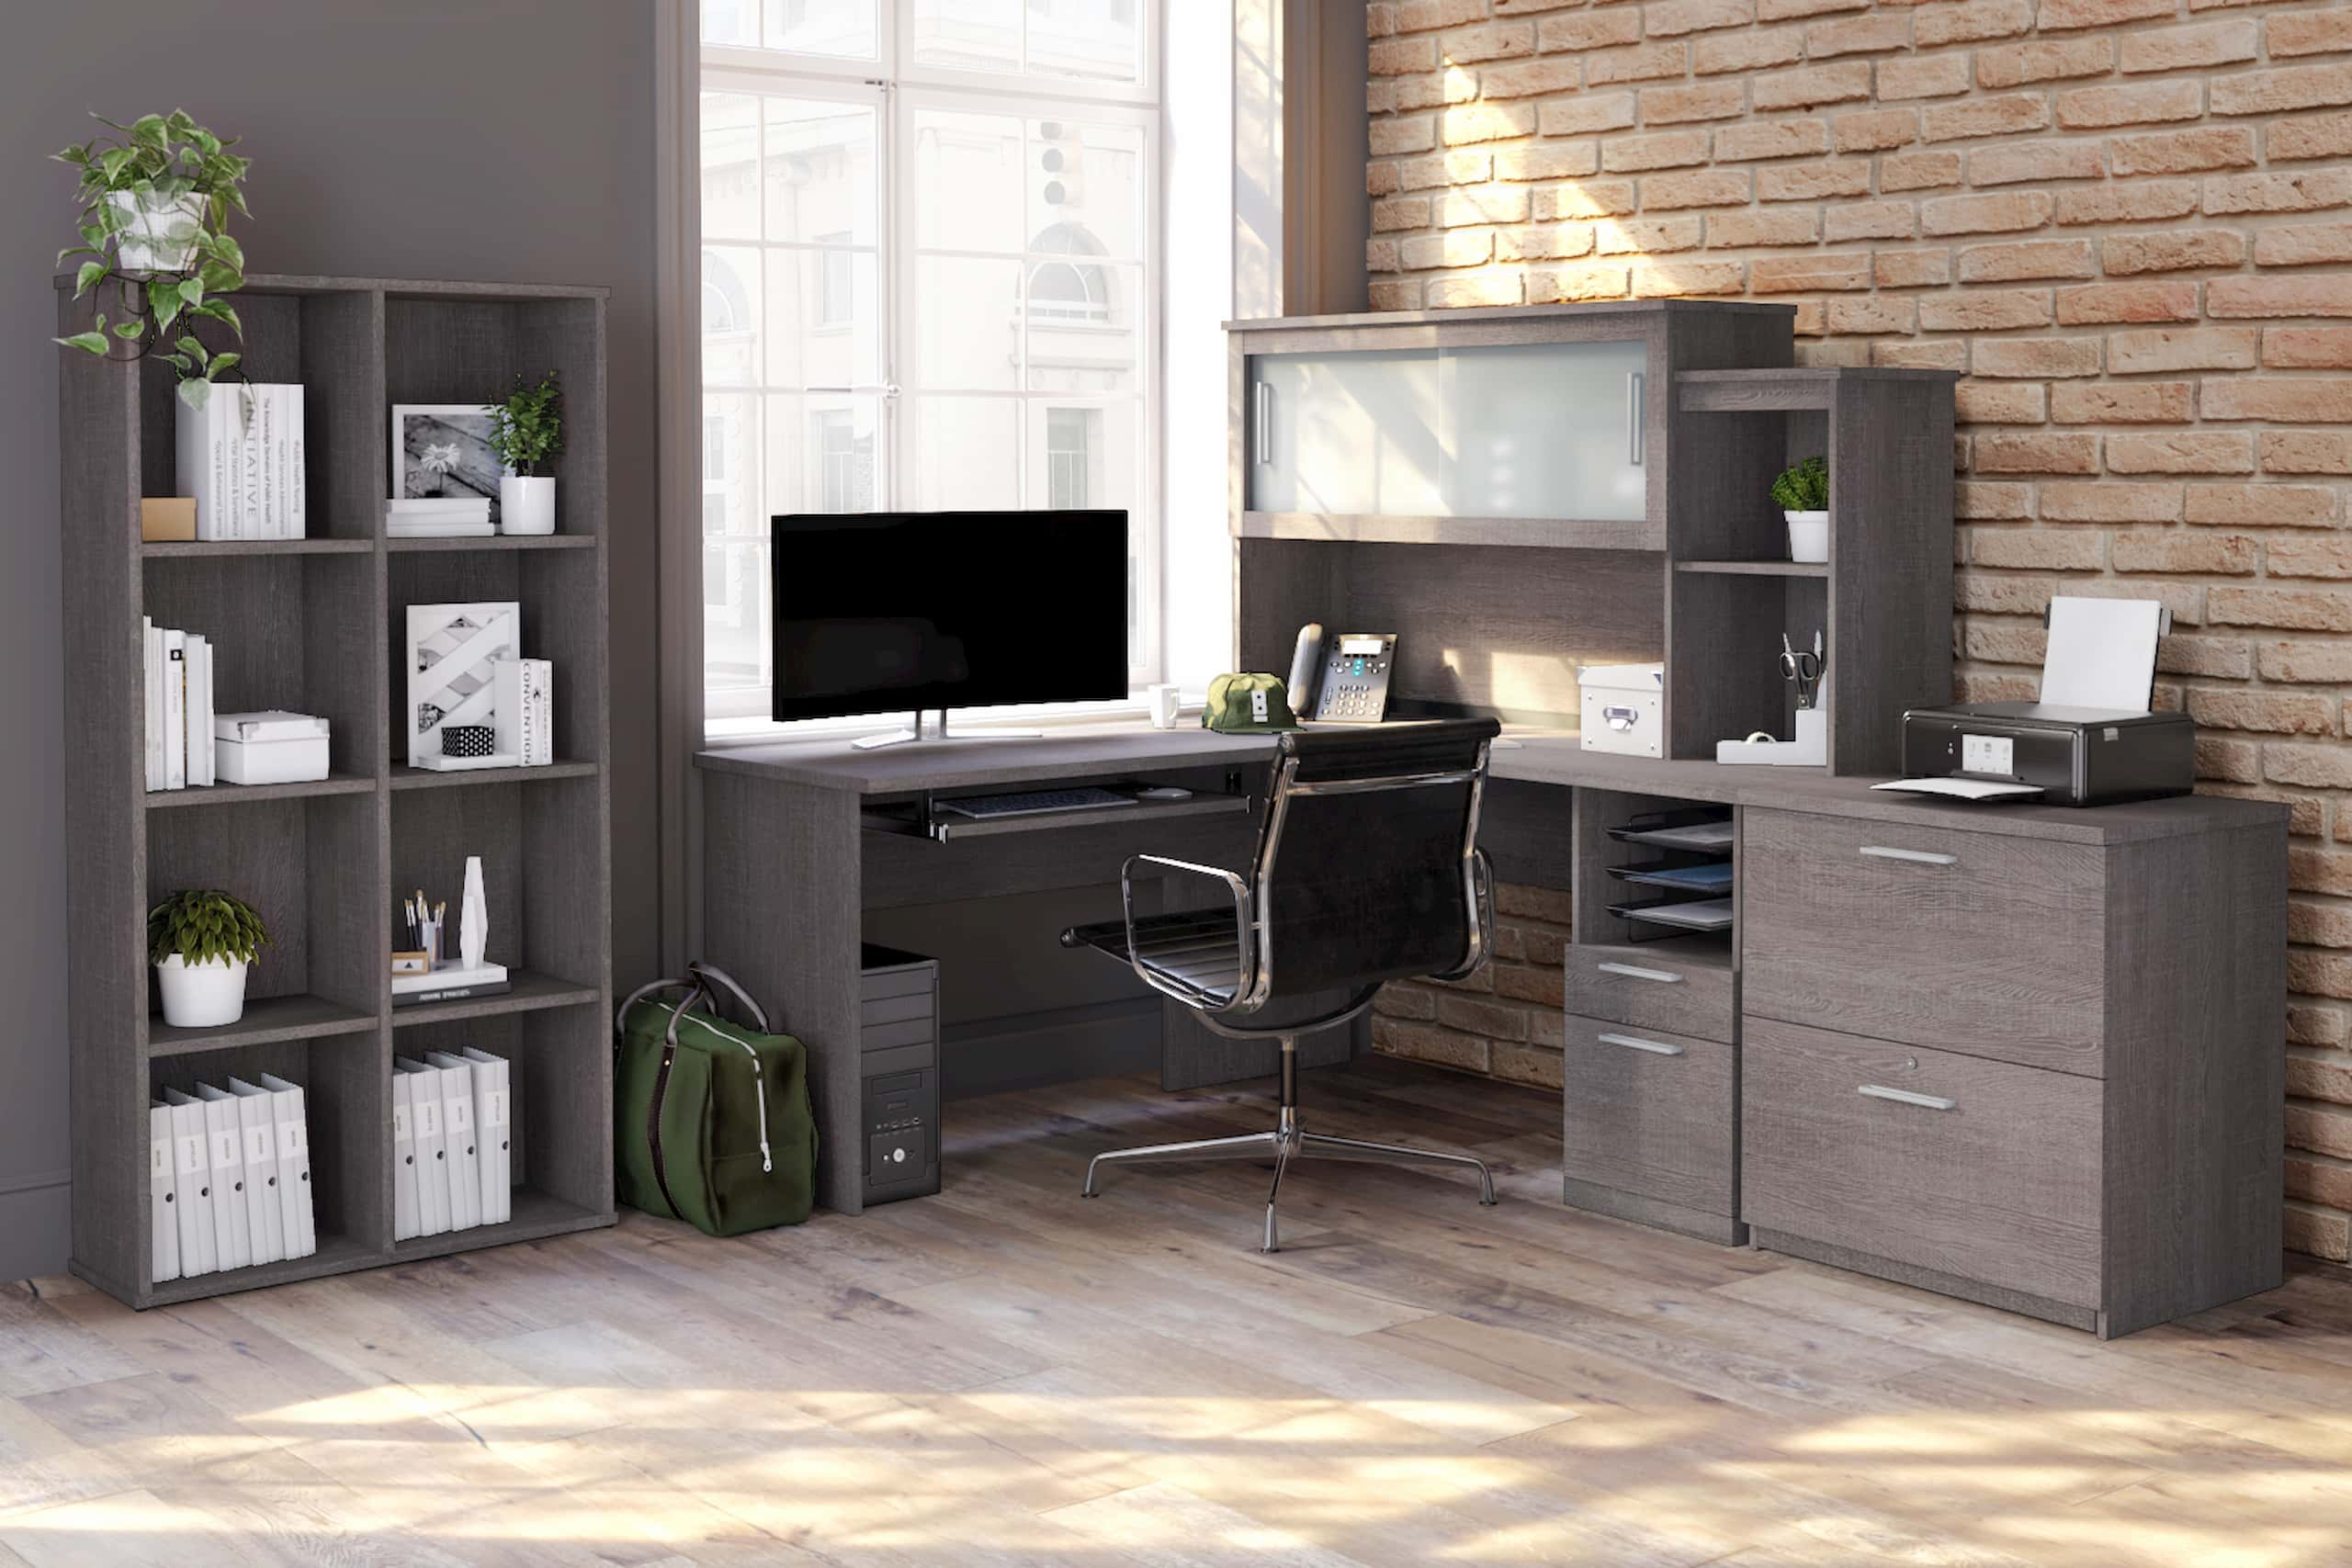 6 Reasons to Invest in an L Shaped Desk